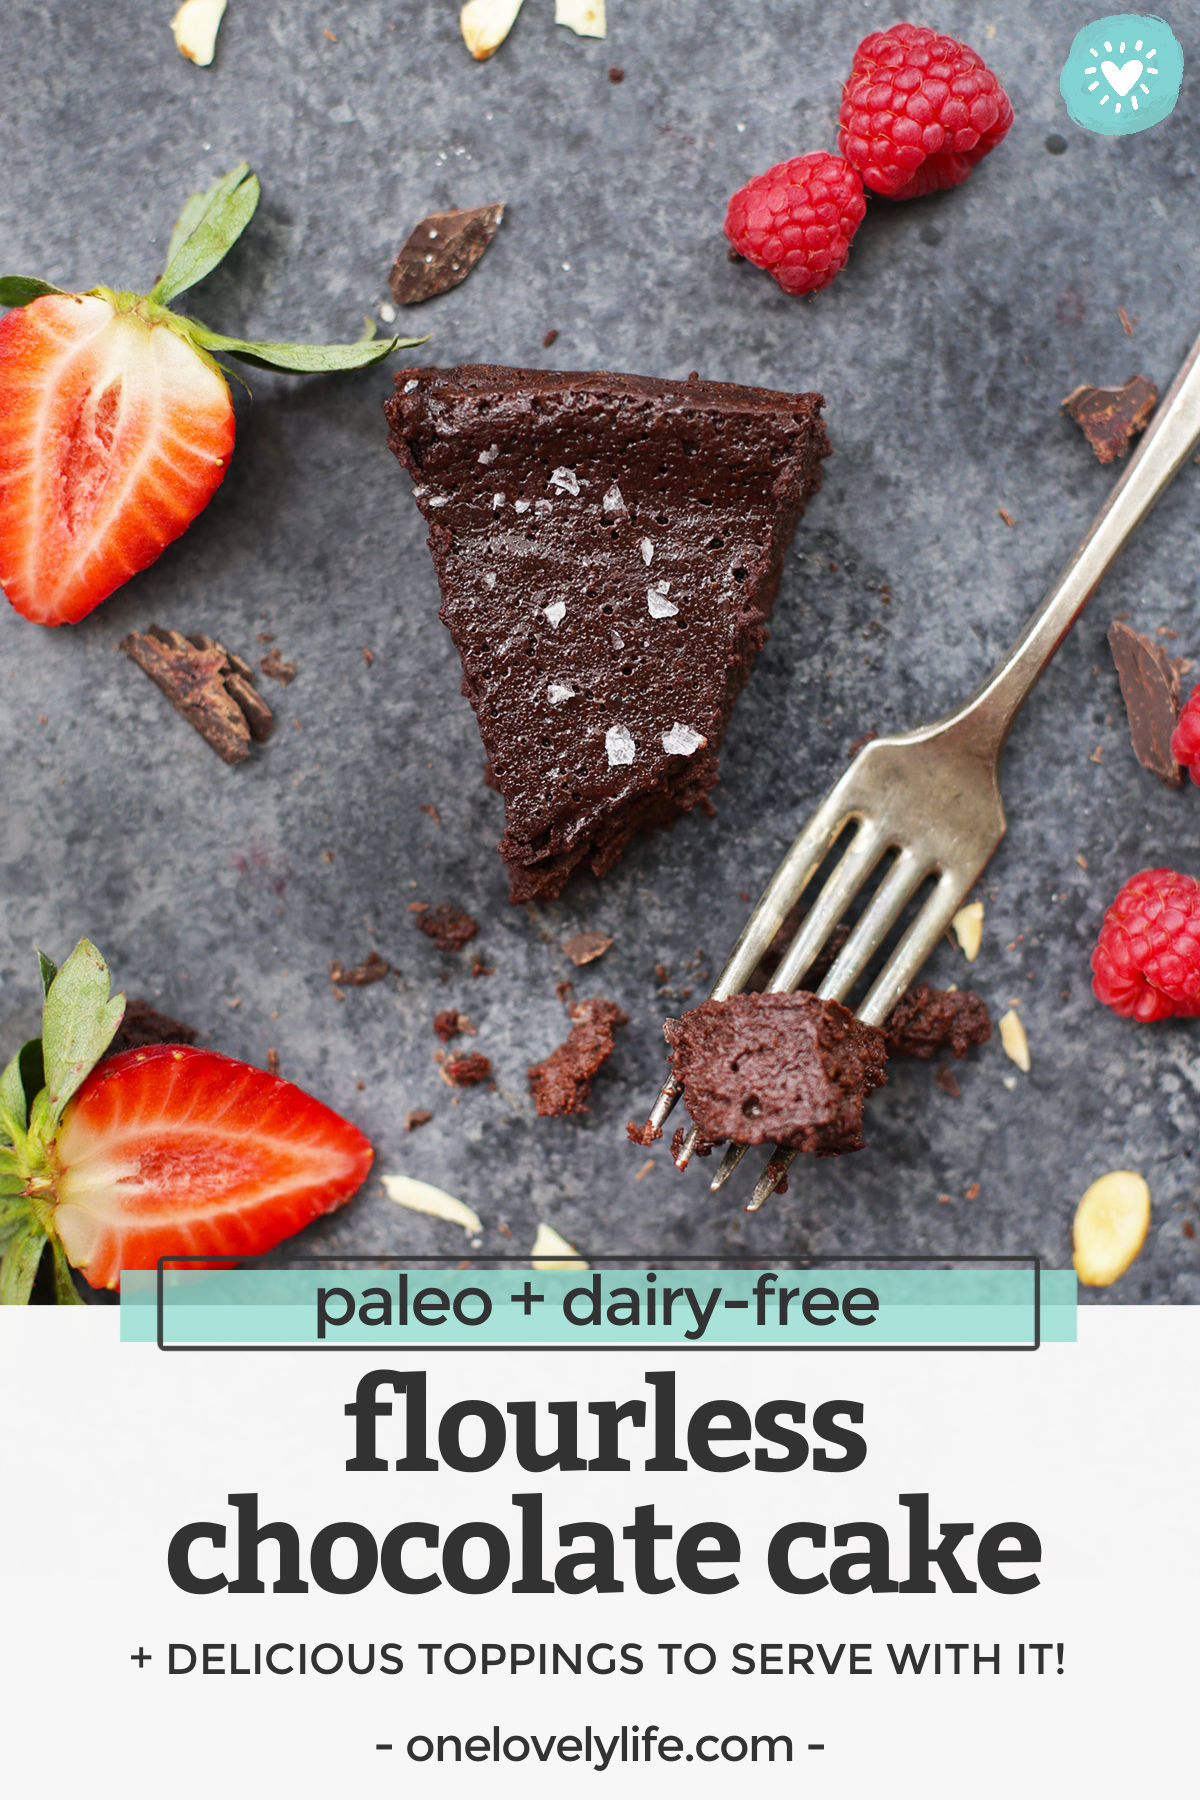 Flourless Chocolate Cake - This dense, perfectly rich chocolate cake is gluten free, dairy free, and naturally sweetened, but has all the indulgent decadence you're looking for on a special occasion. Pro tip: don't skip the raspberry sauce! // dairy free flourless chocolate cake recipe // paleo flourless chocolate cake // gluten free flourless chocolate cake // paleo chocolate cake // gluten free chocolate cake #flourlesschocolate cake #chocolatecake #valentinesday